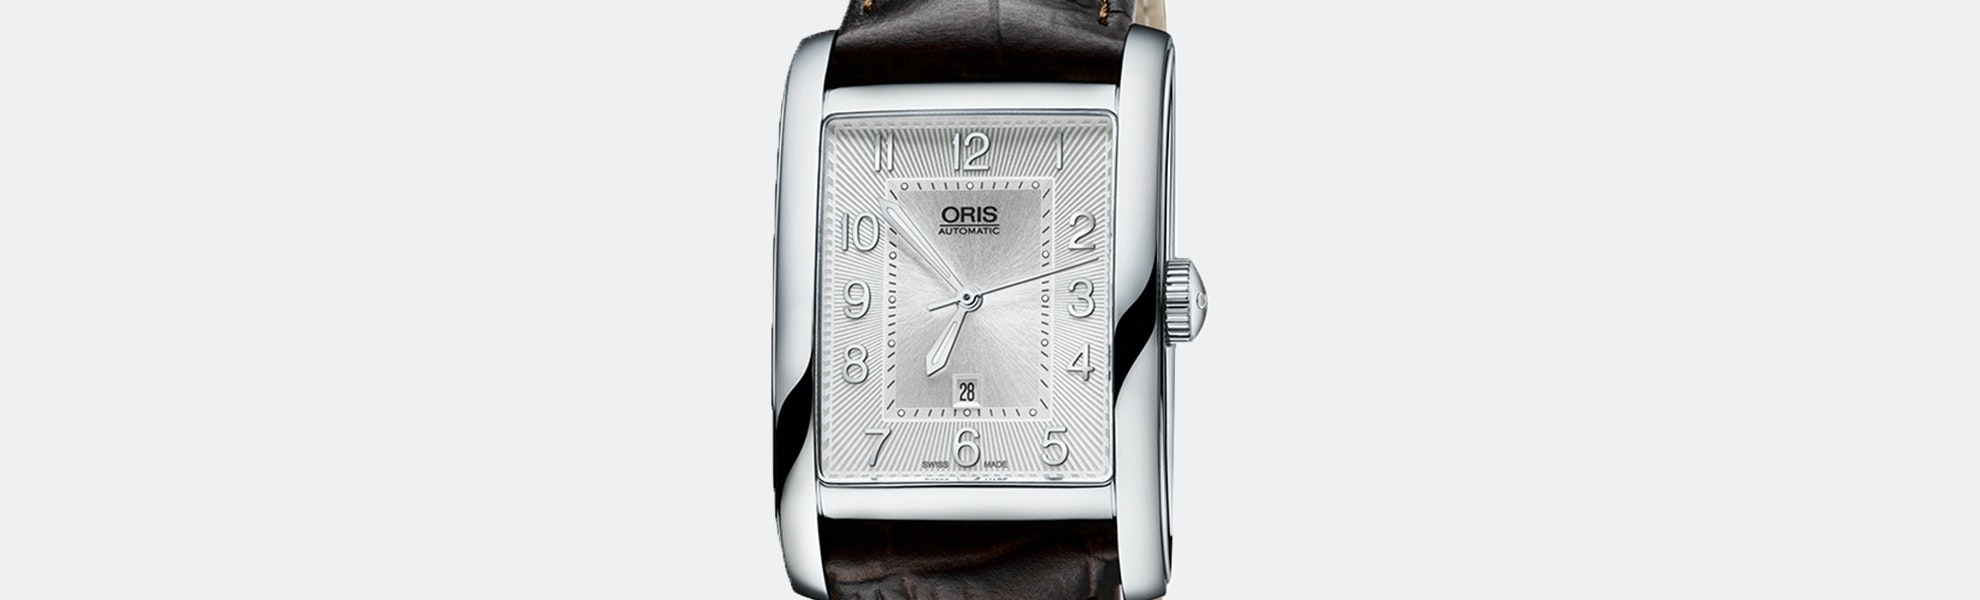 Oris Rectangular Date Automatic Watch